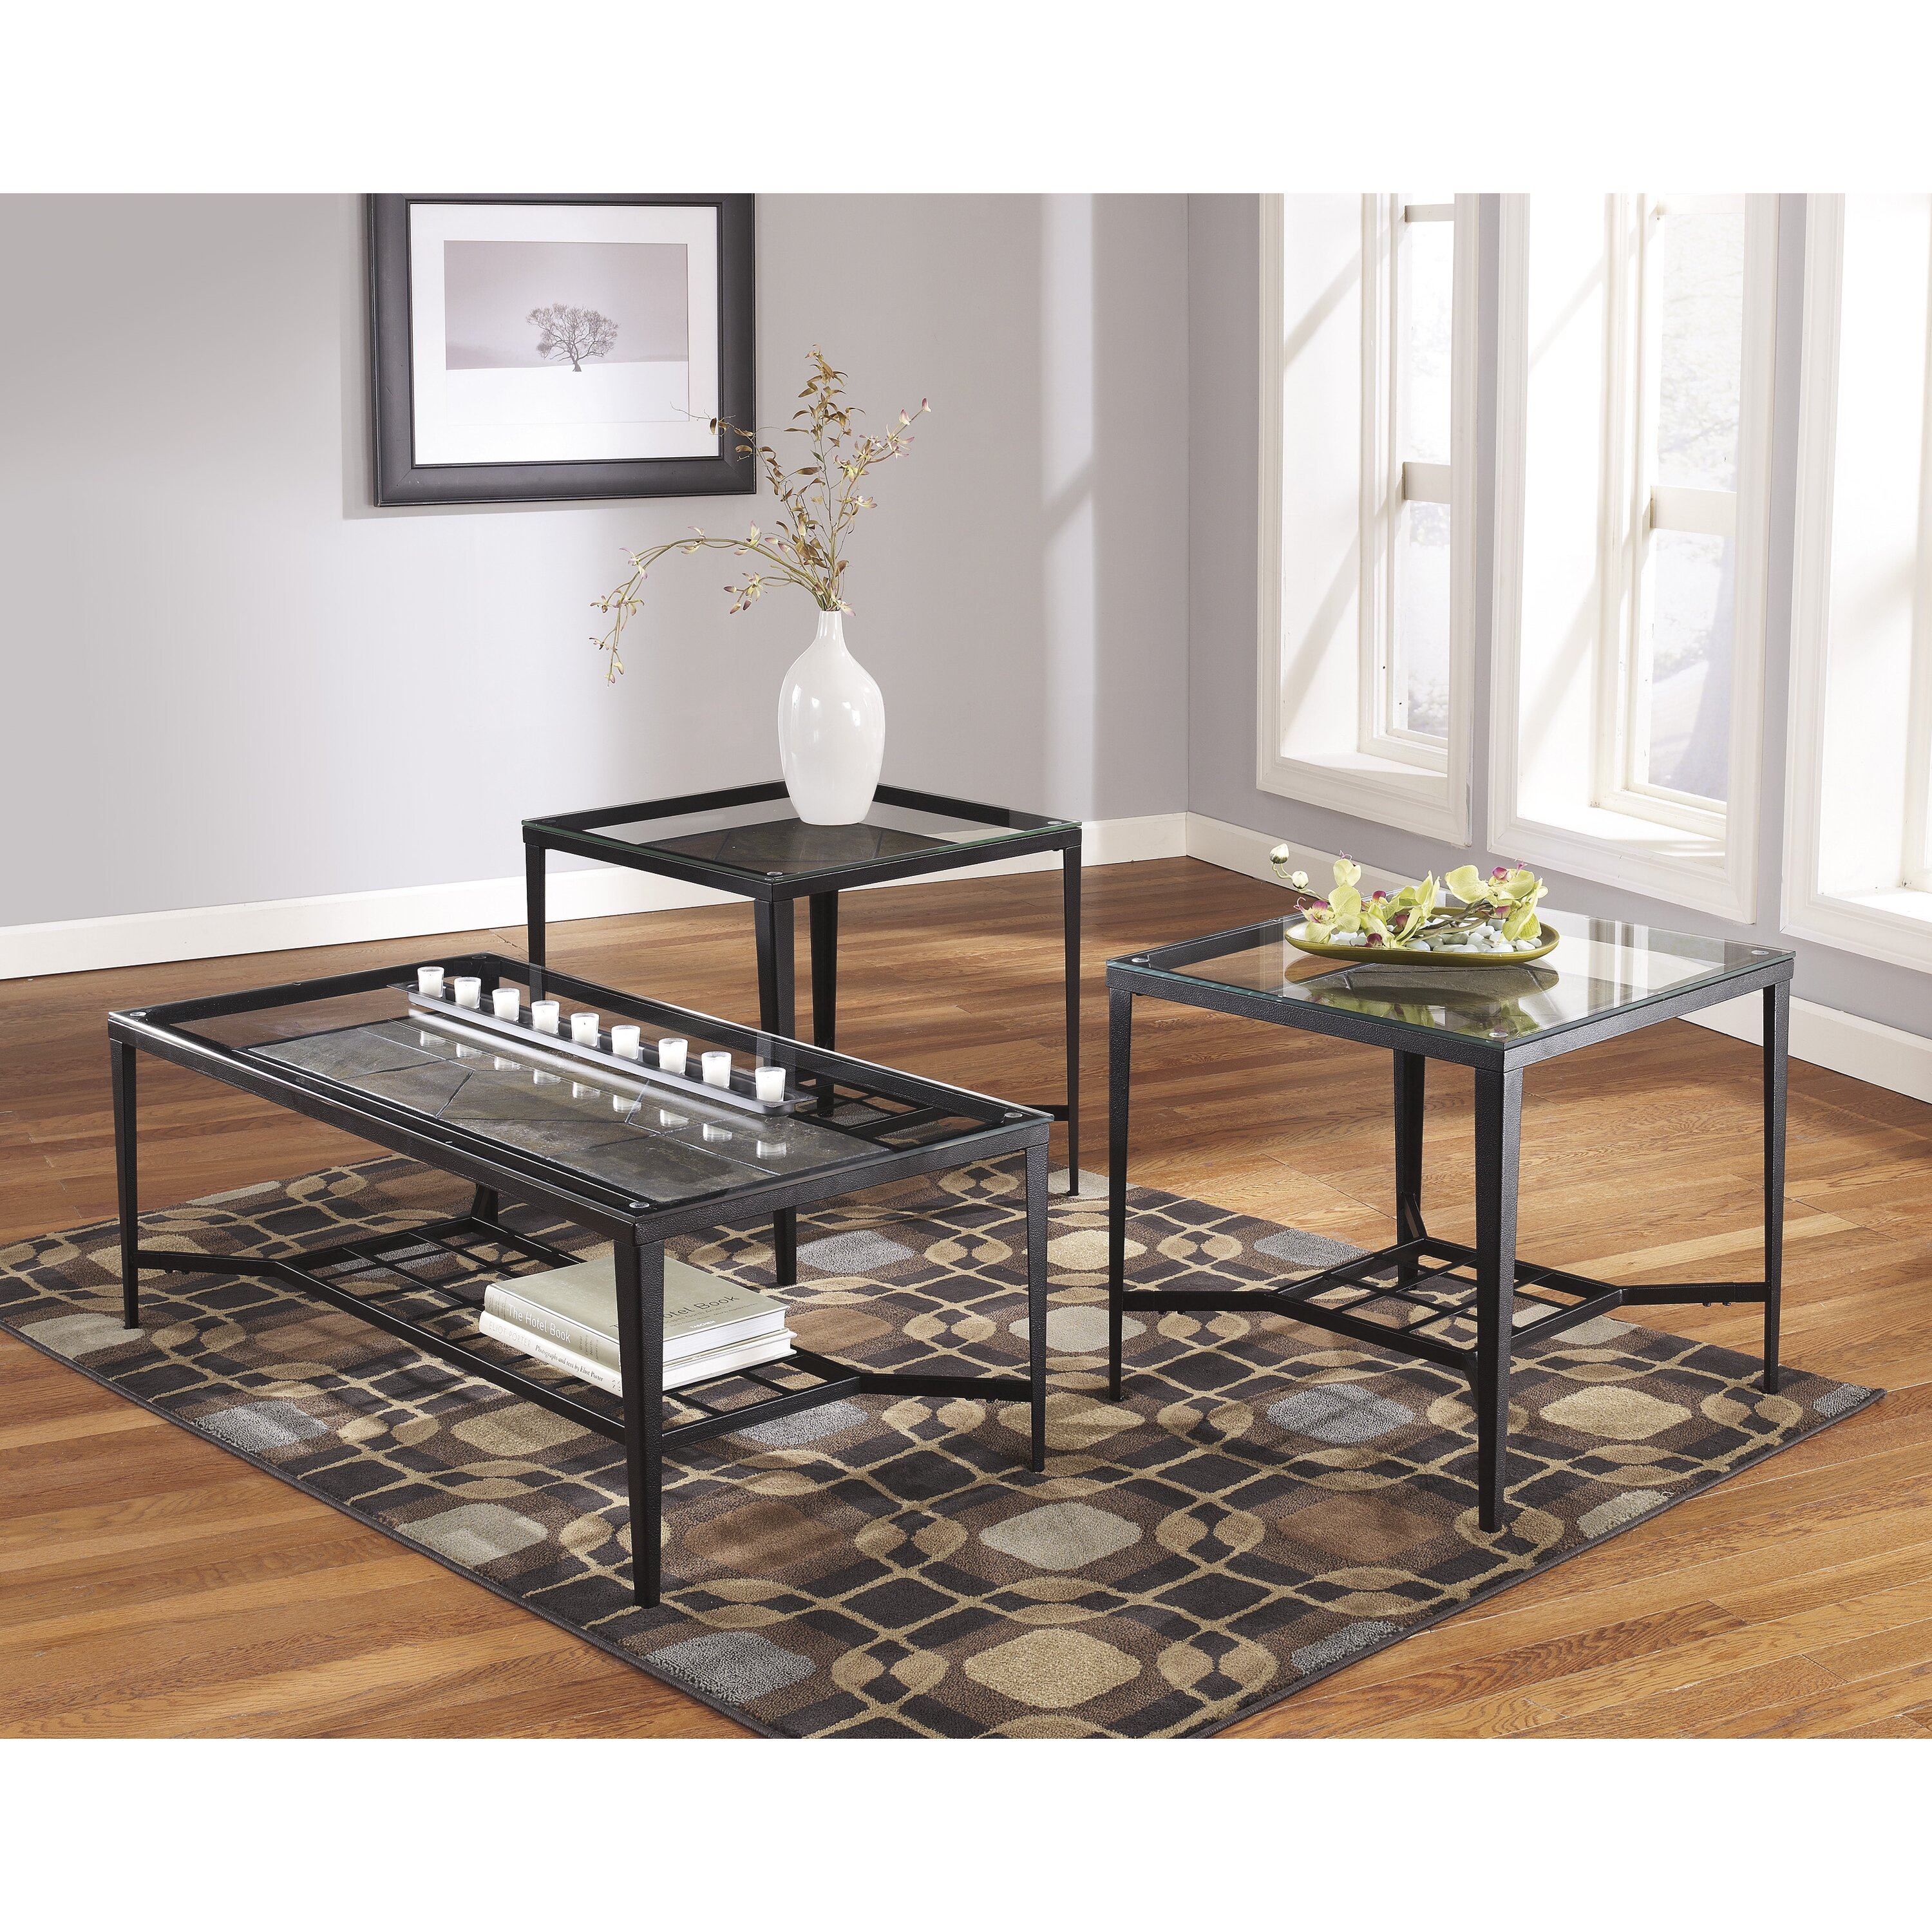 Signature Design By Ashley Alexandra 3 Piece Coffee Table Set Reviews Wayfair